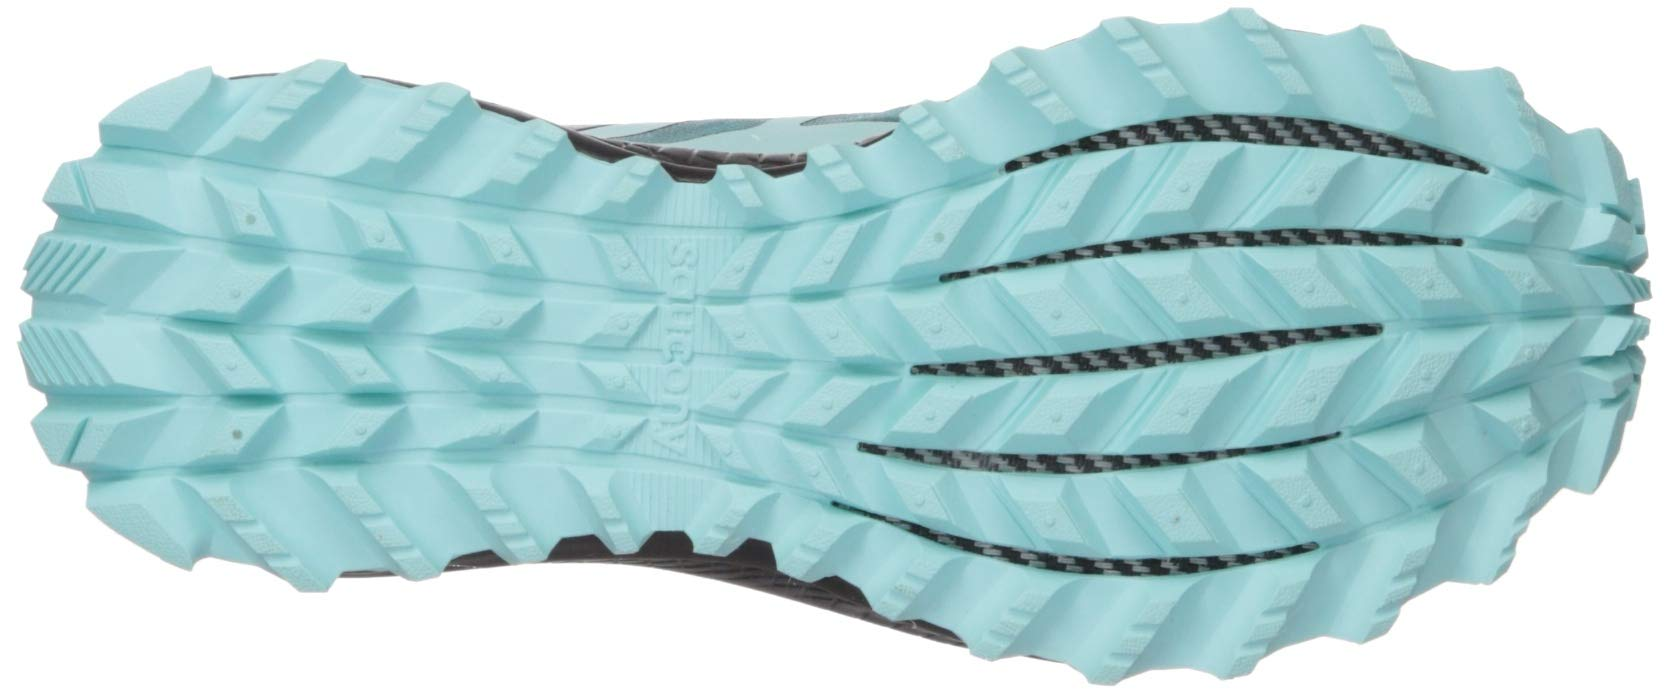 Saucony Women's Peregrine ISO Trail Running Shoe, Aqua/Grey, 5 M US by Saucony (Image #3)